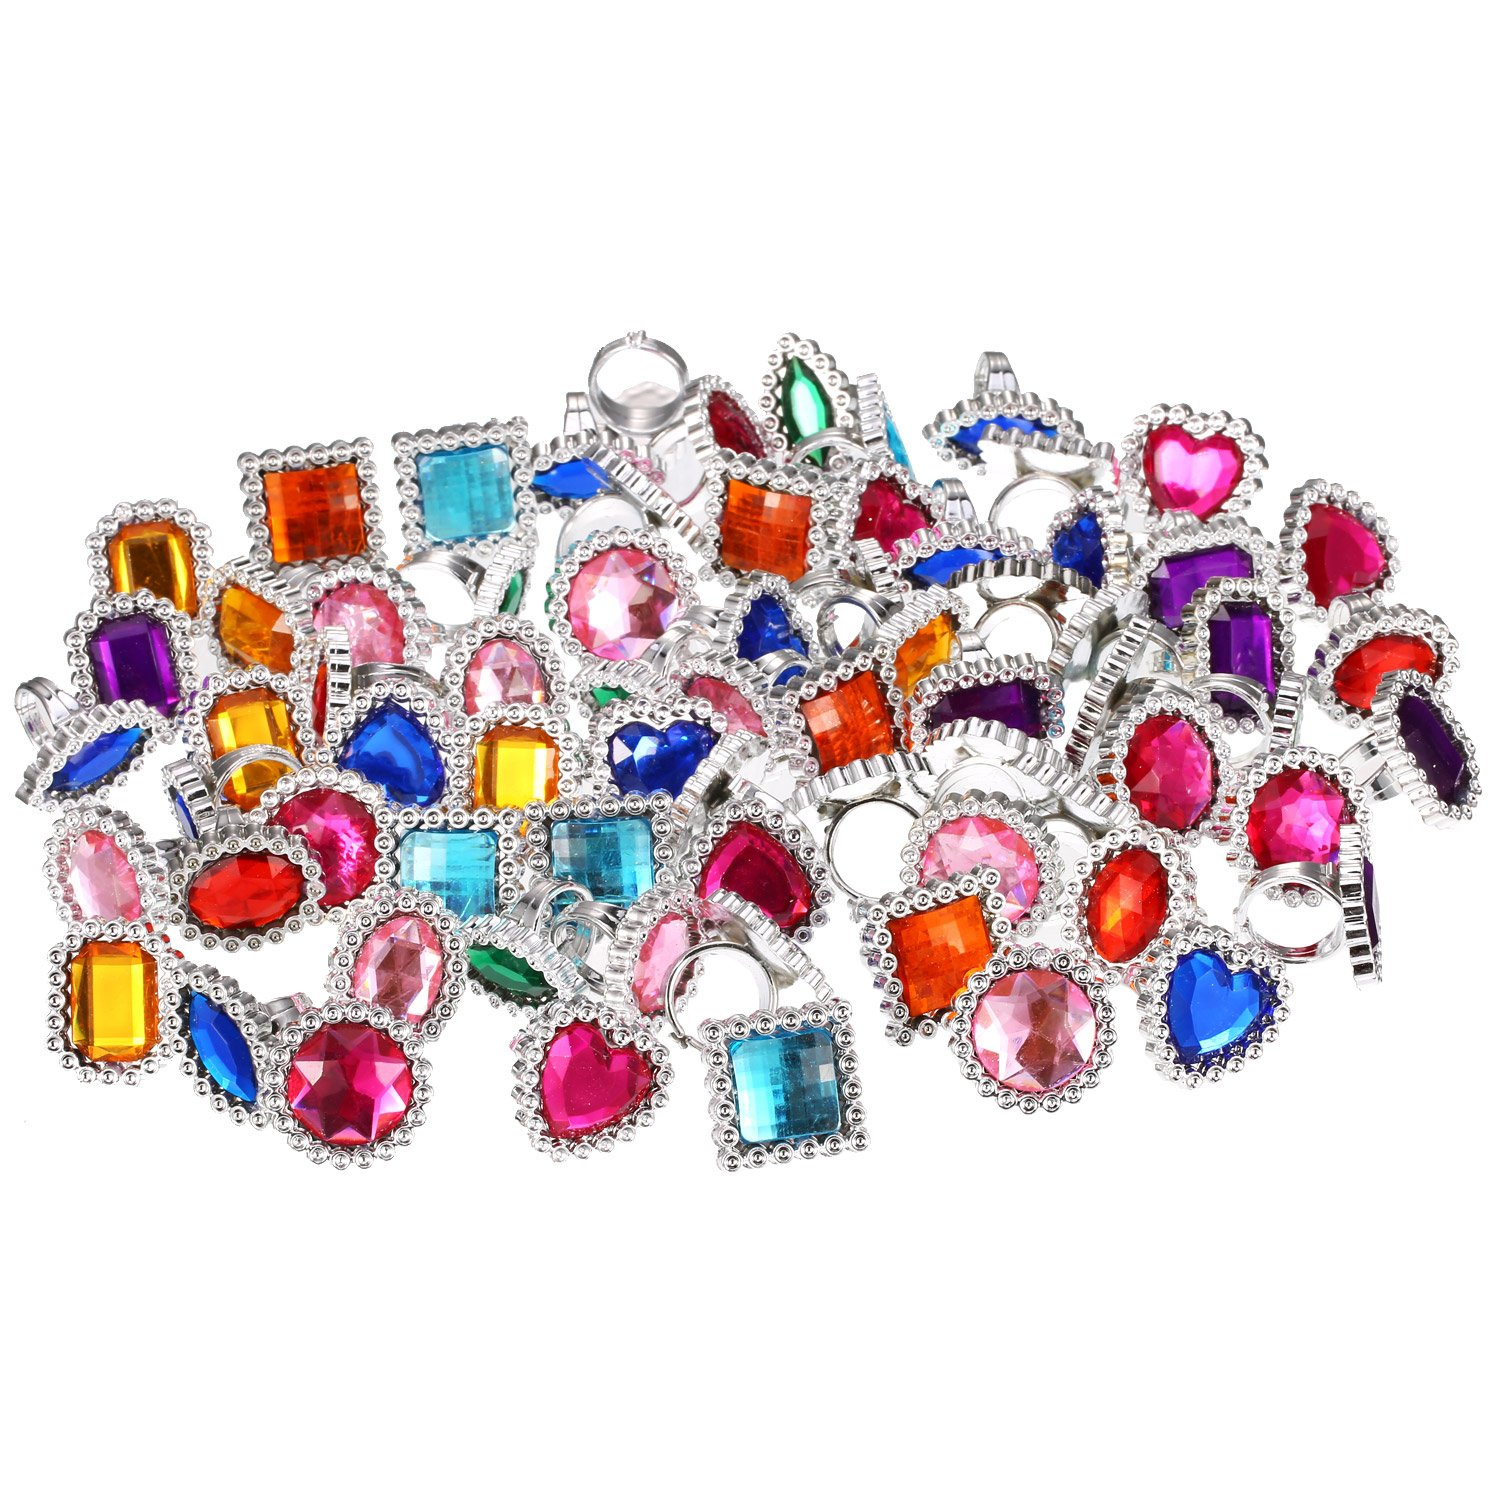 Shappy 72 Pieces Plastic Colorful Rhinestone Gem Rings Sparkle Adjustable Big Jewel Rings Princess Ring Toy Rings Girls Dress Up Accessories